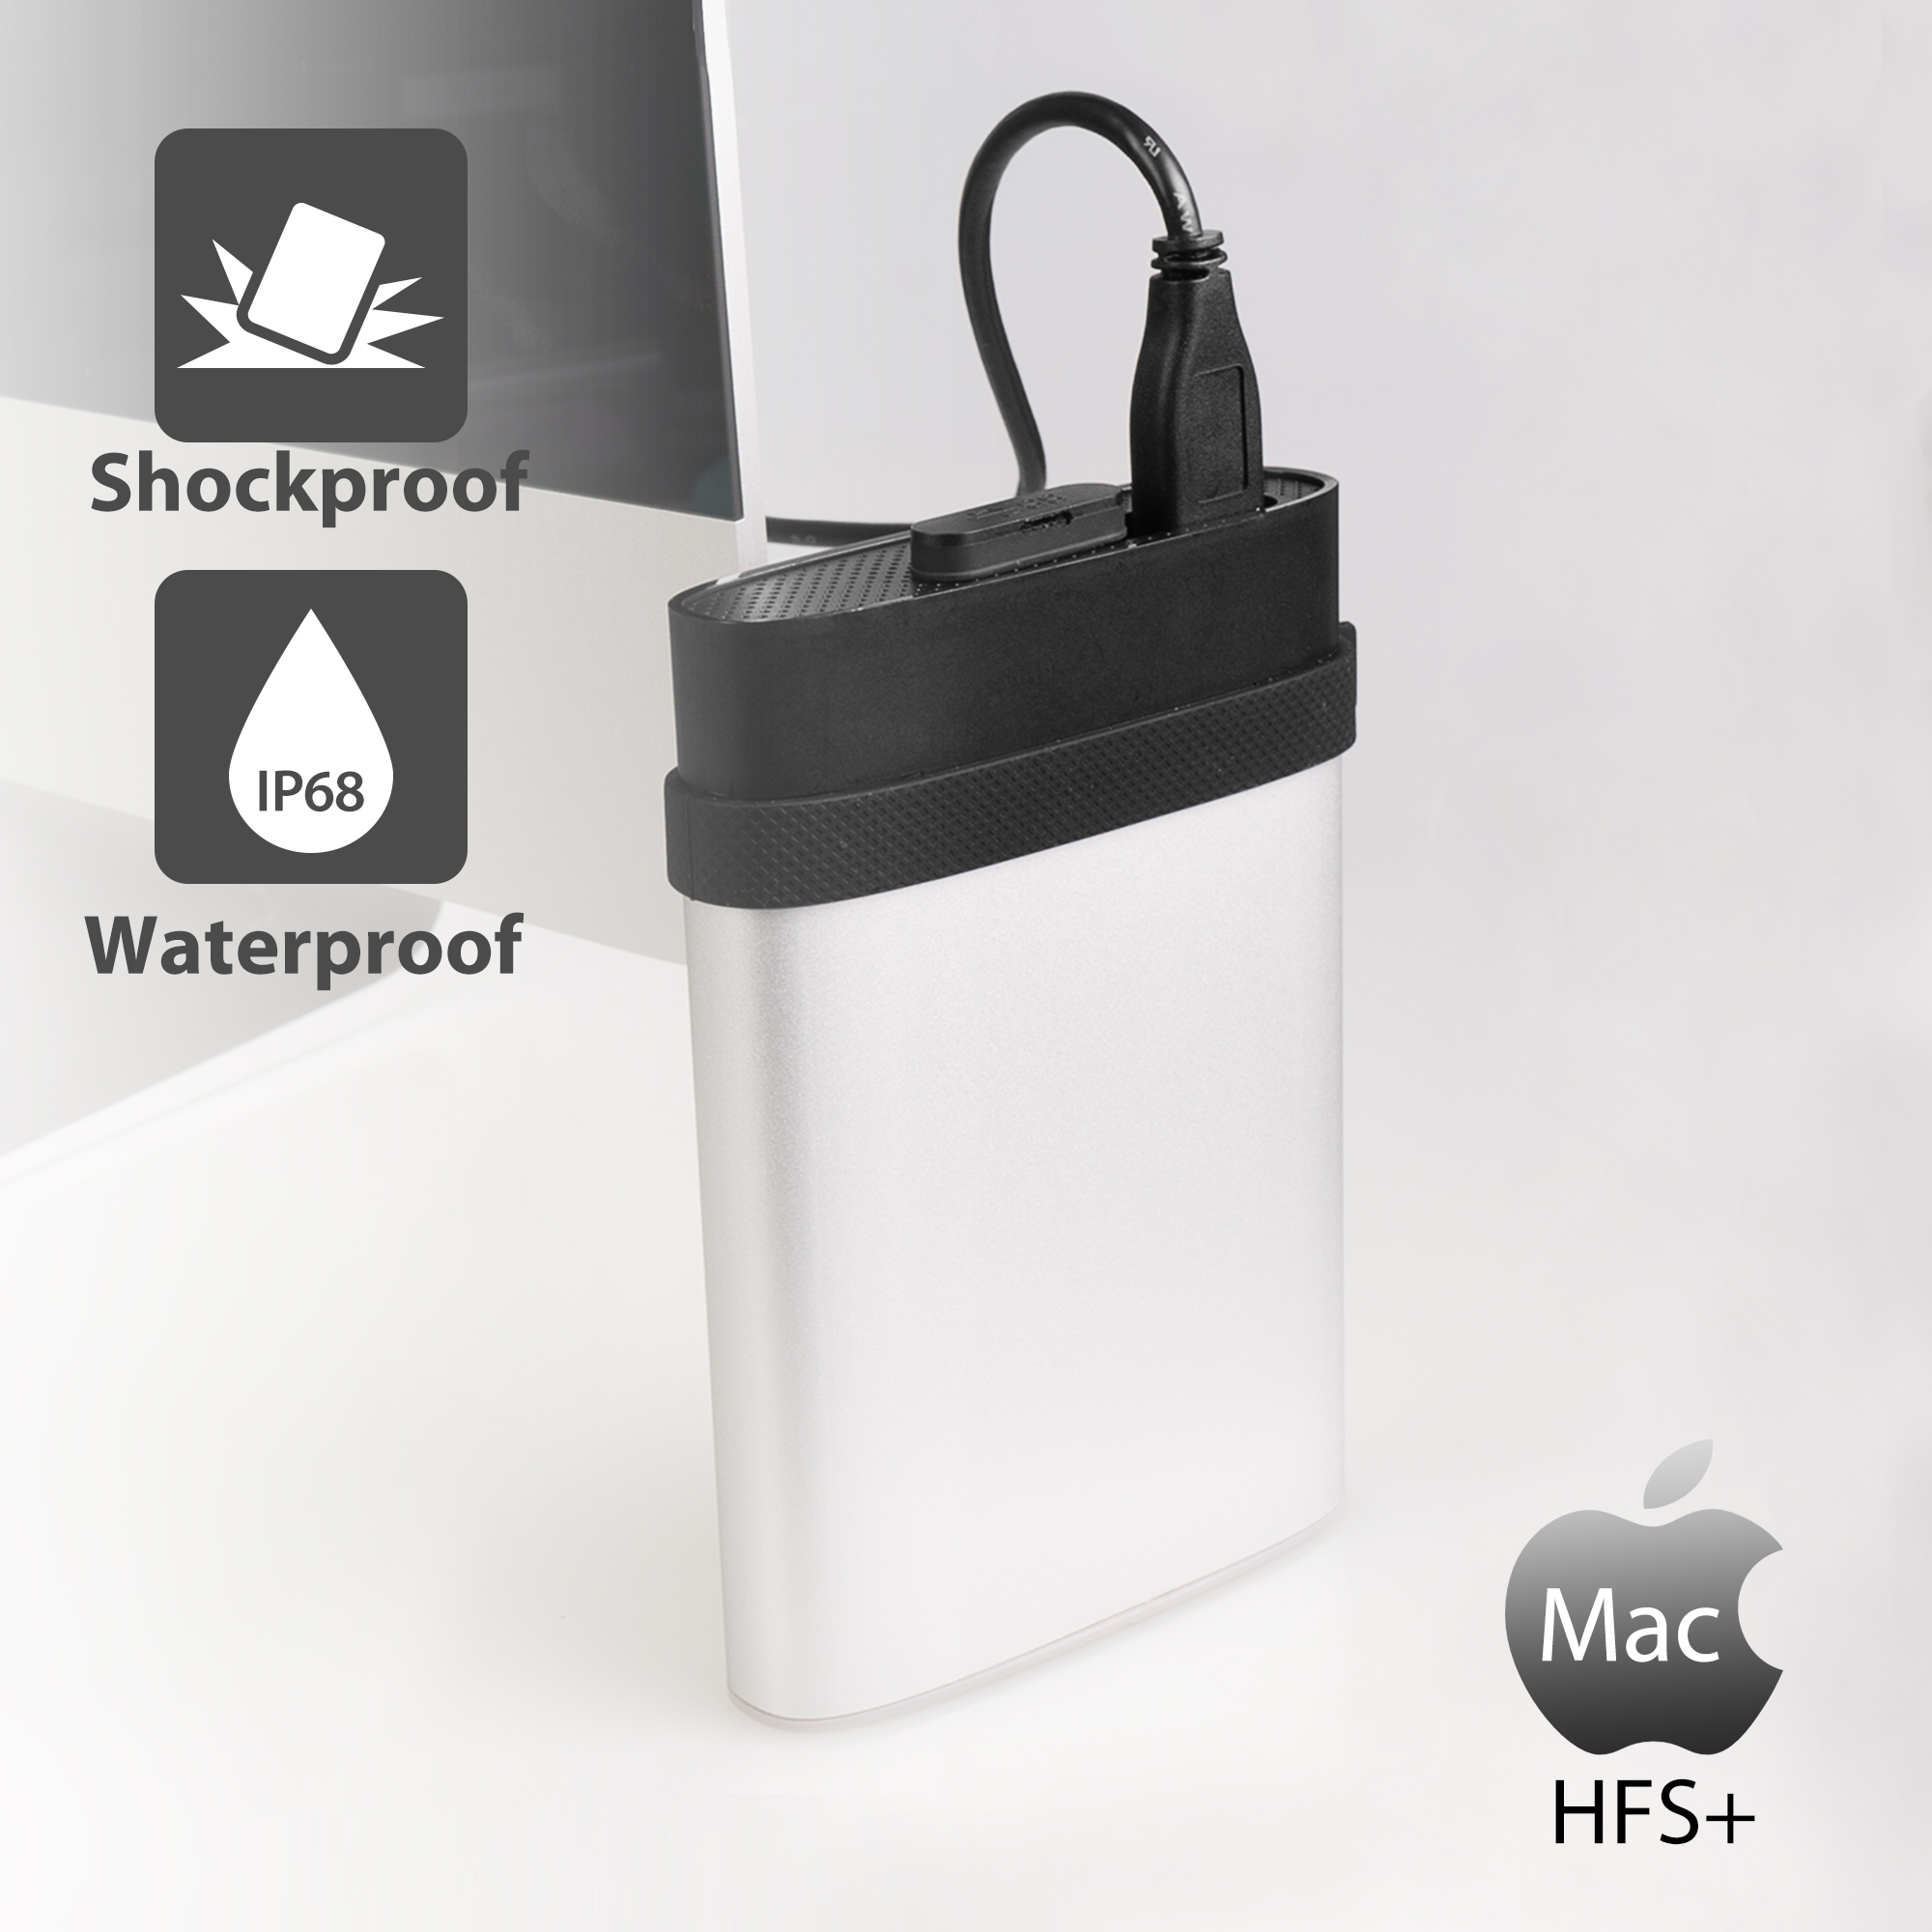 Silicon Power 4TB A85M Shockproof & Waterproof External Hard Drive for Mac (USB 3.0)